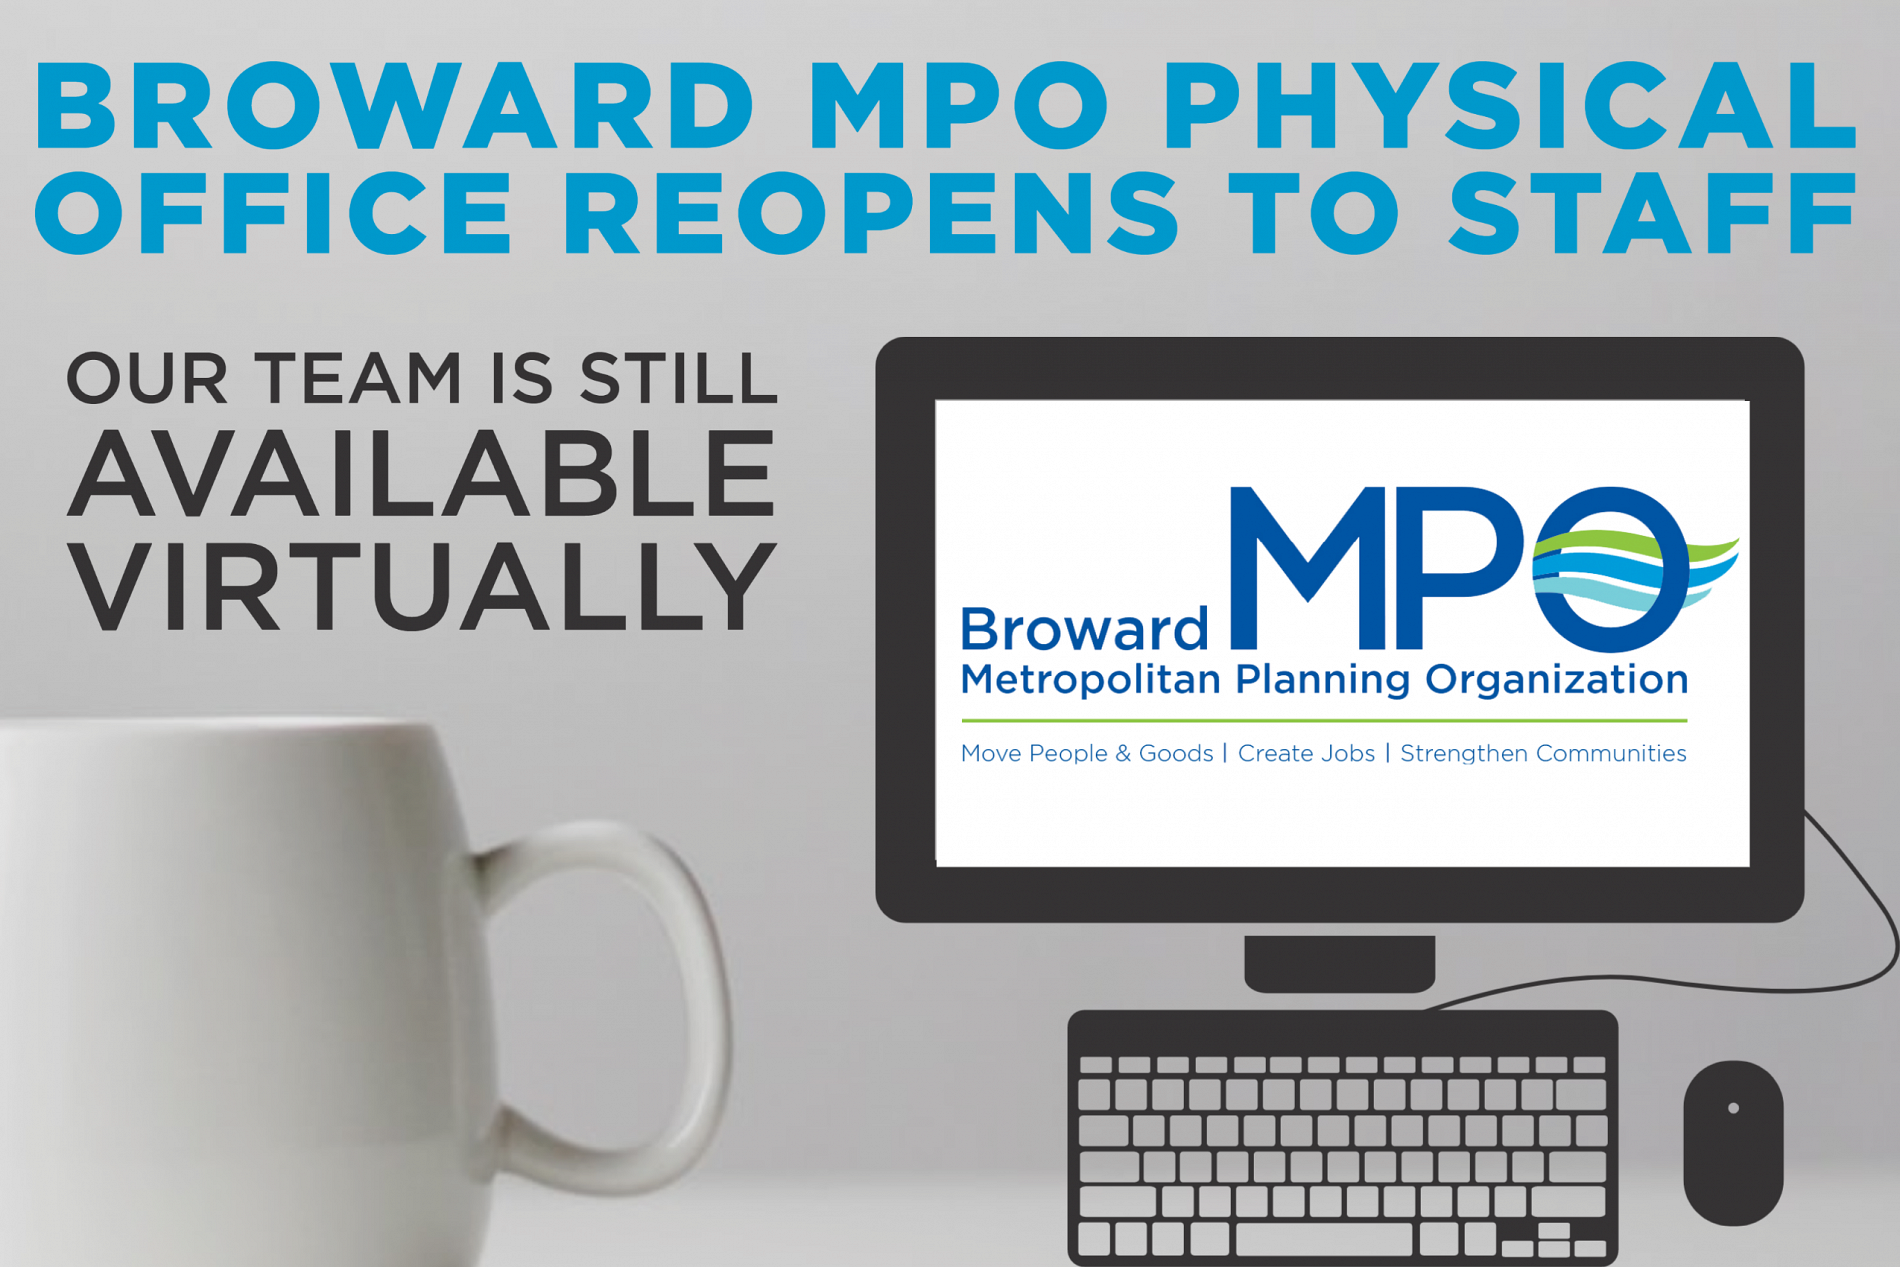 Broward MPO Office Working in a Hybrid Format